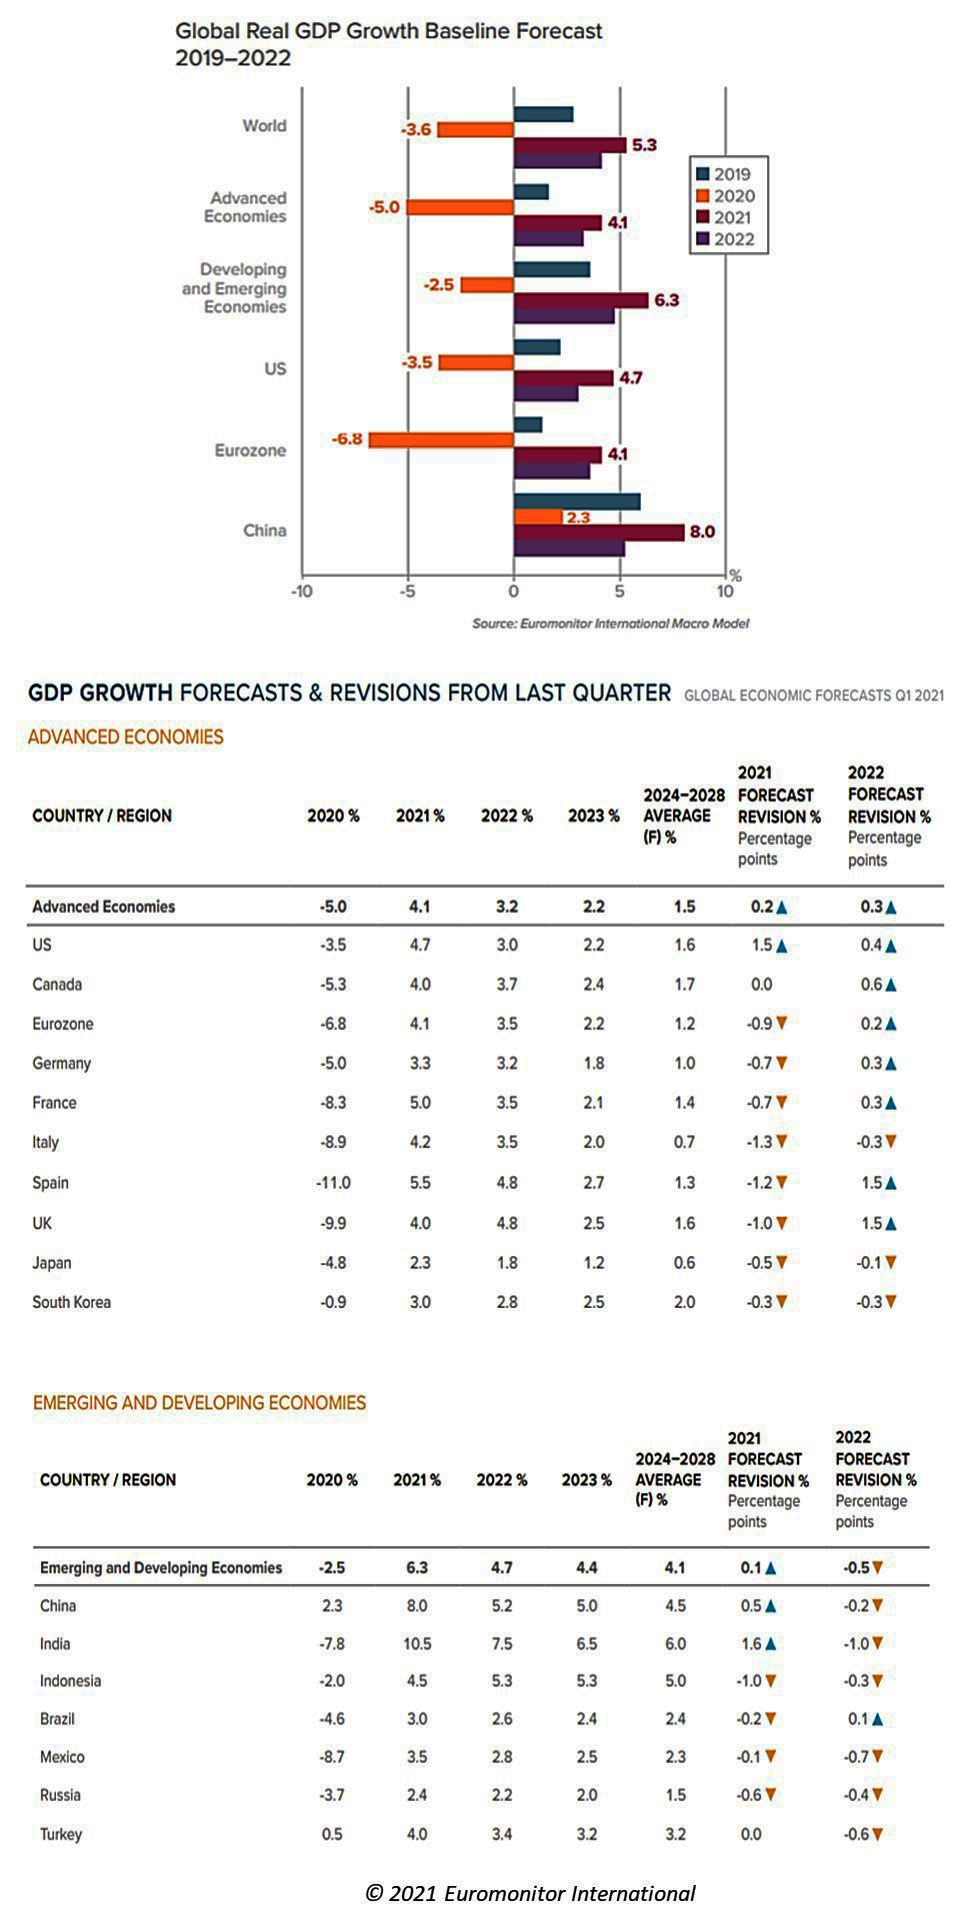 An Early 2021 Forecast of the Global Economy